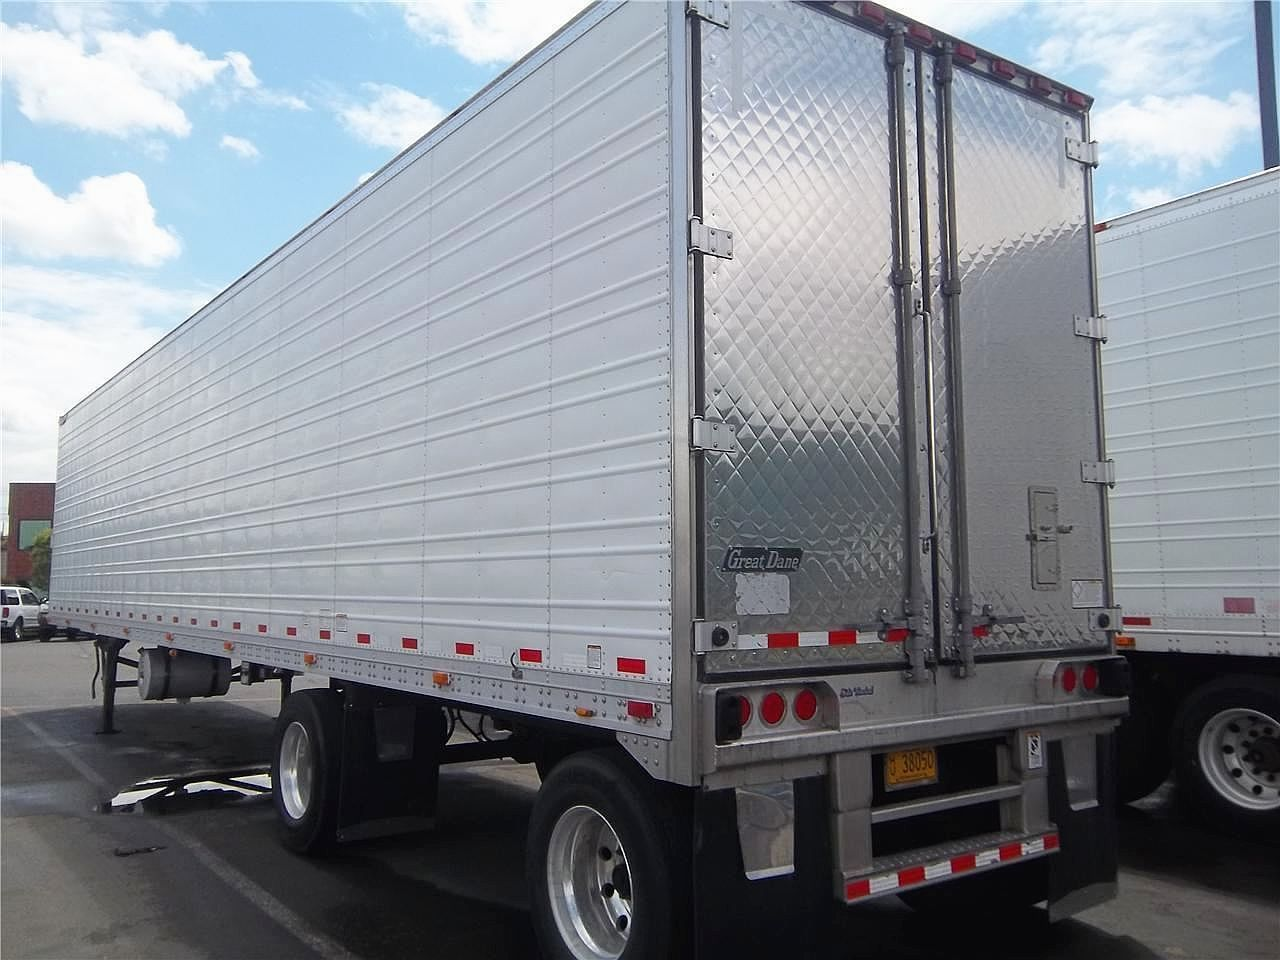 Trucking in the us is picking up manufacturers even have a backlog of orders for new trailers